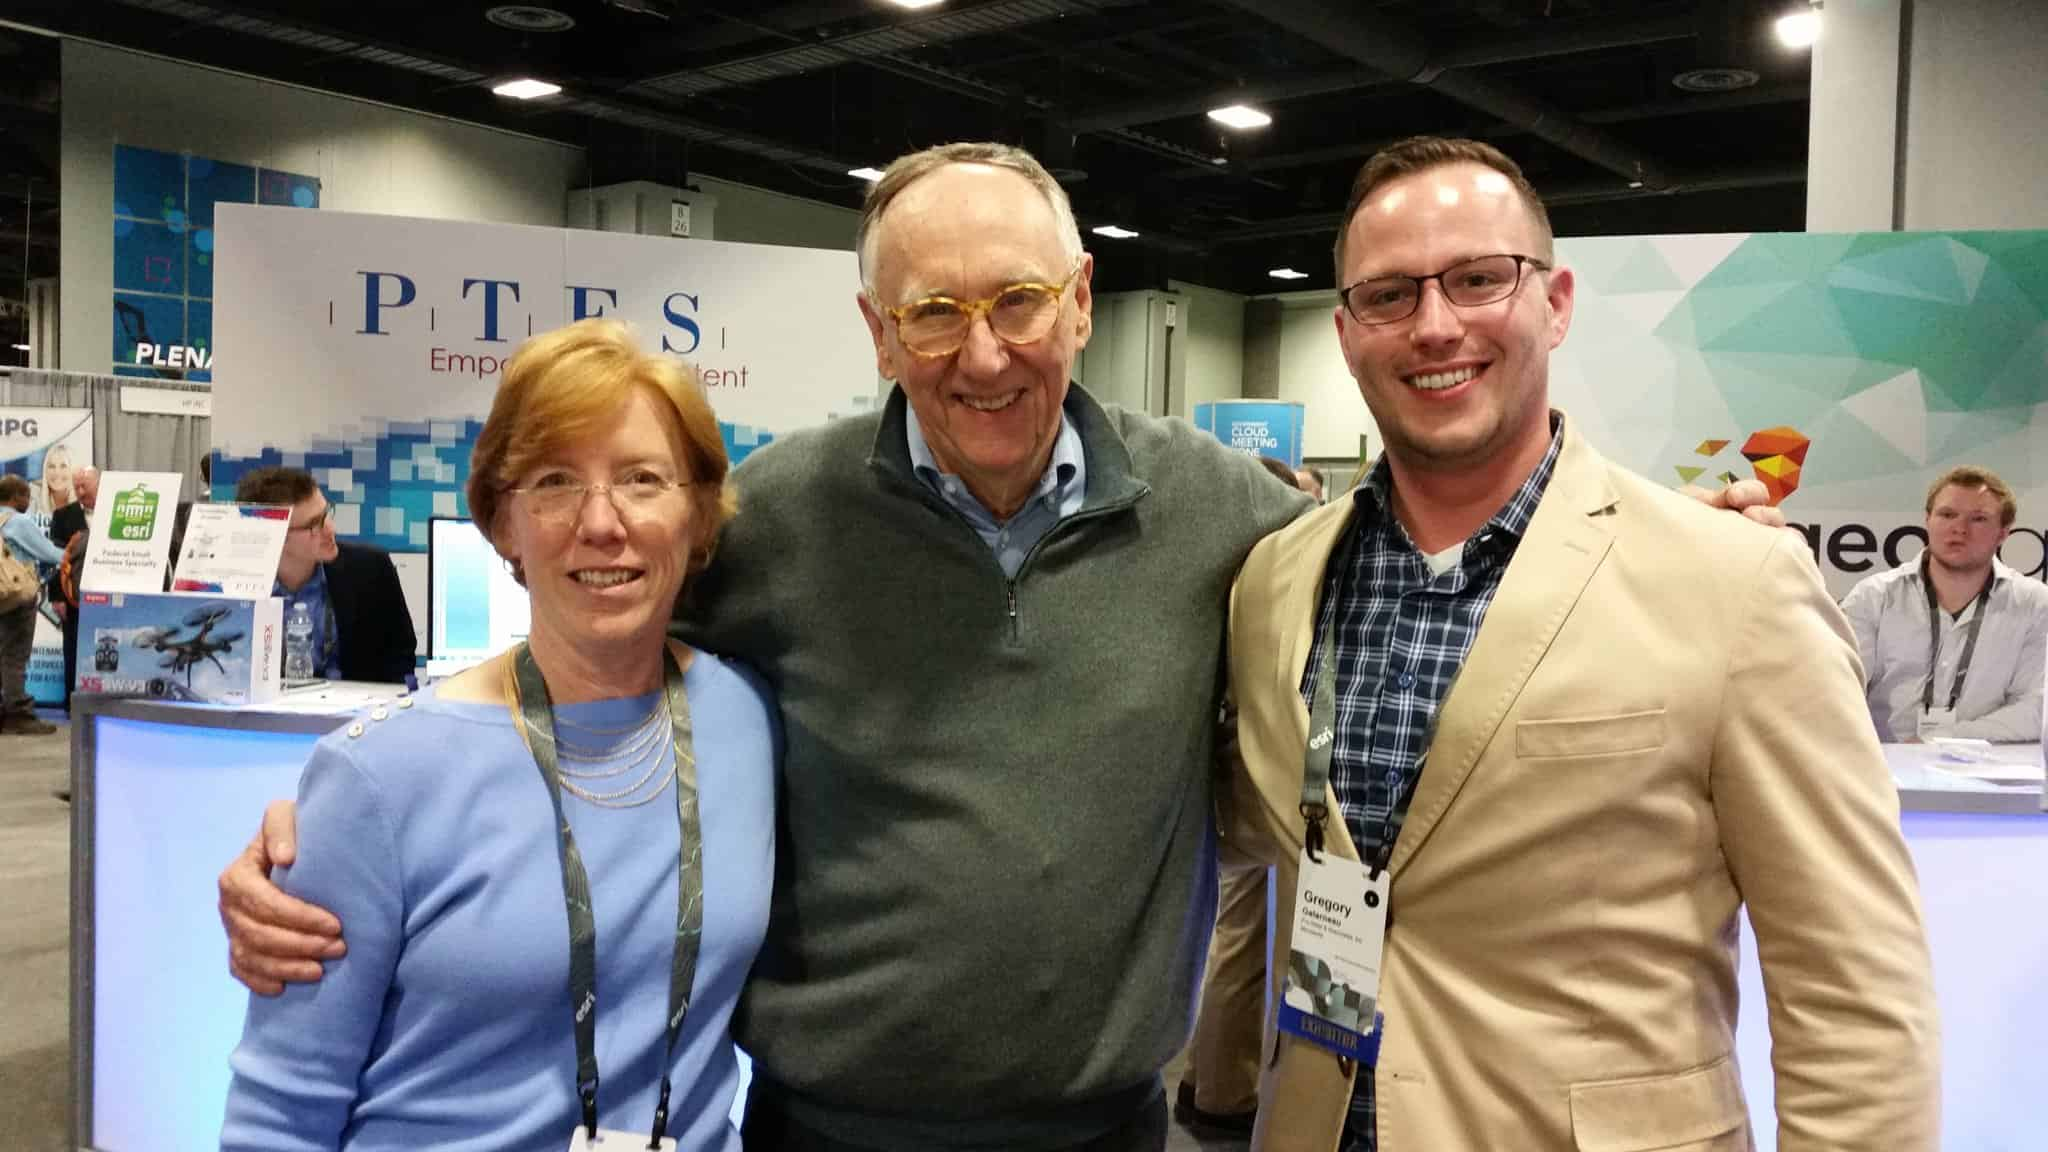 Pro-West President & CEO, Annette Theroux, and Business Development Manager Greg Galarneau with Jack Dangermond at Esri FedGIS 2017